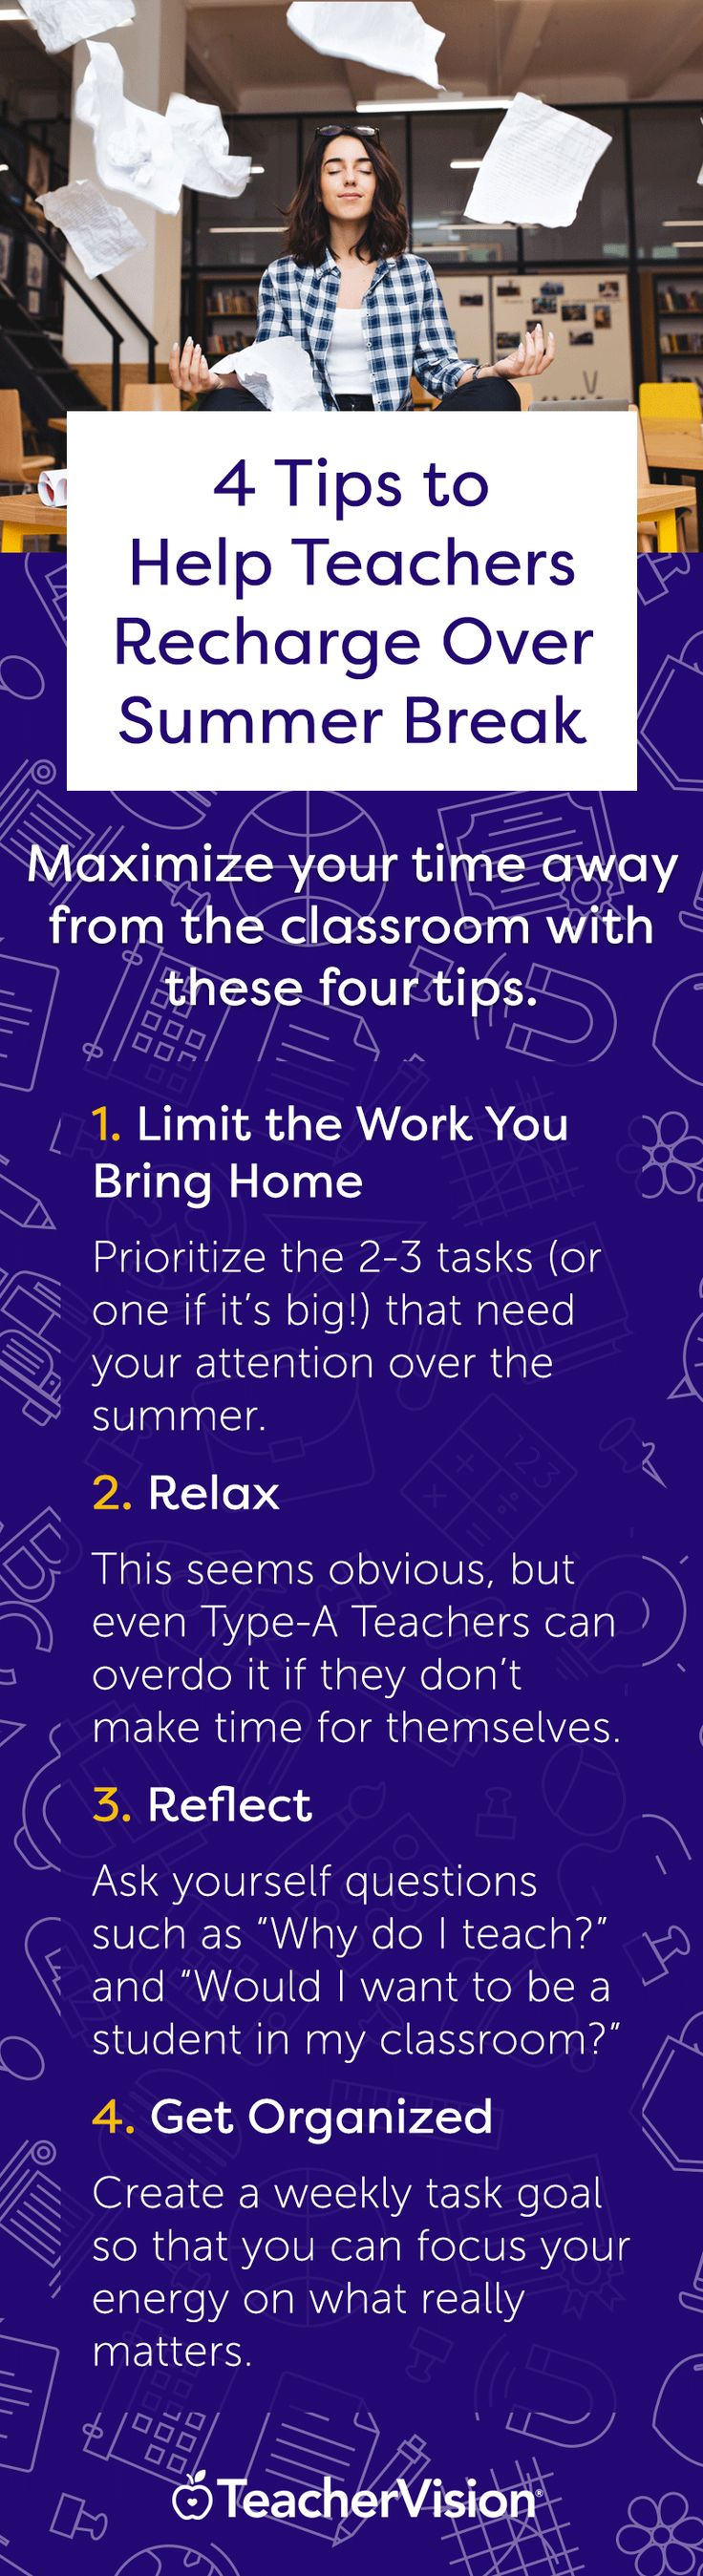 Maximize your time away from the classroom with these 4 tips. (Read the full article on TeacherVision's new blog!)